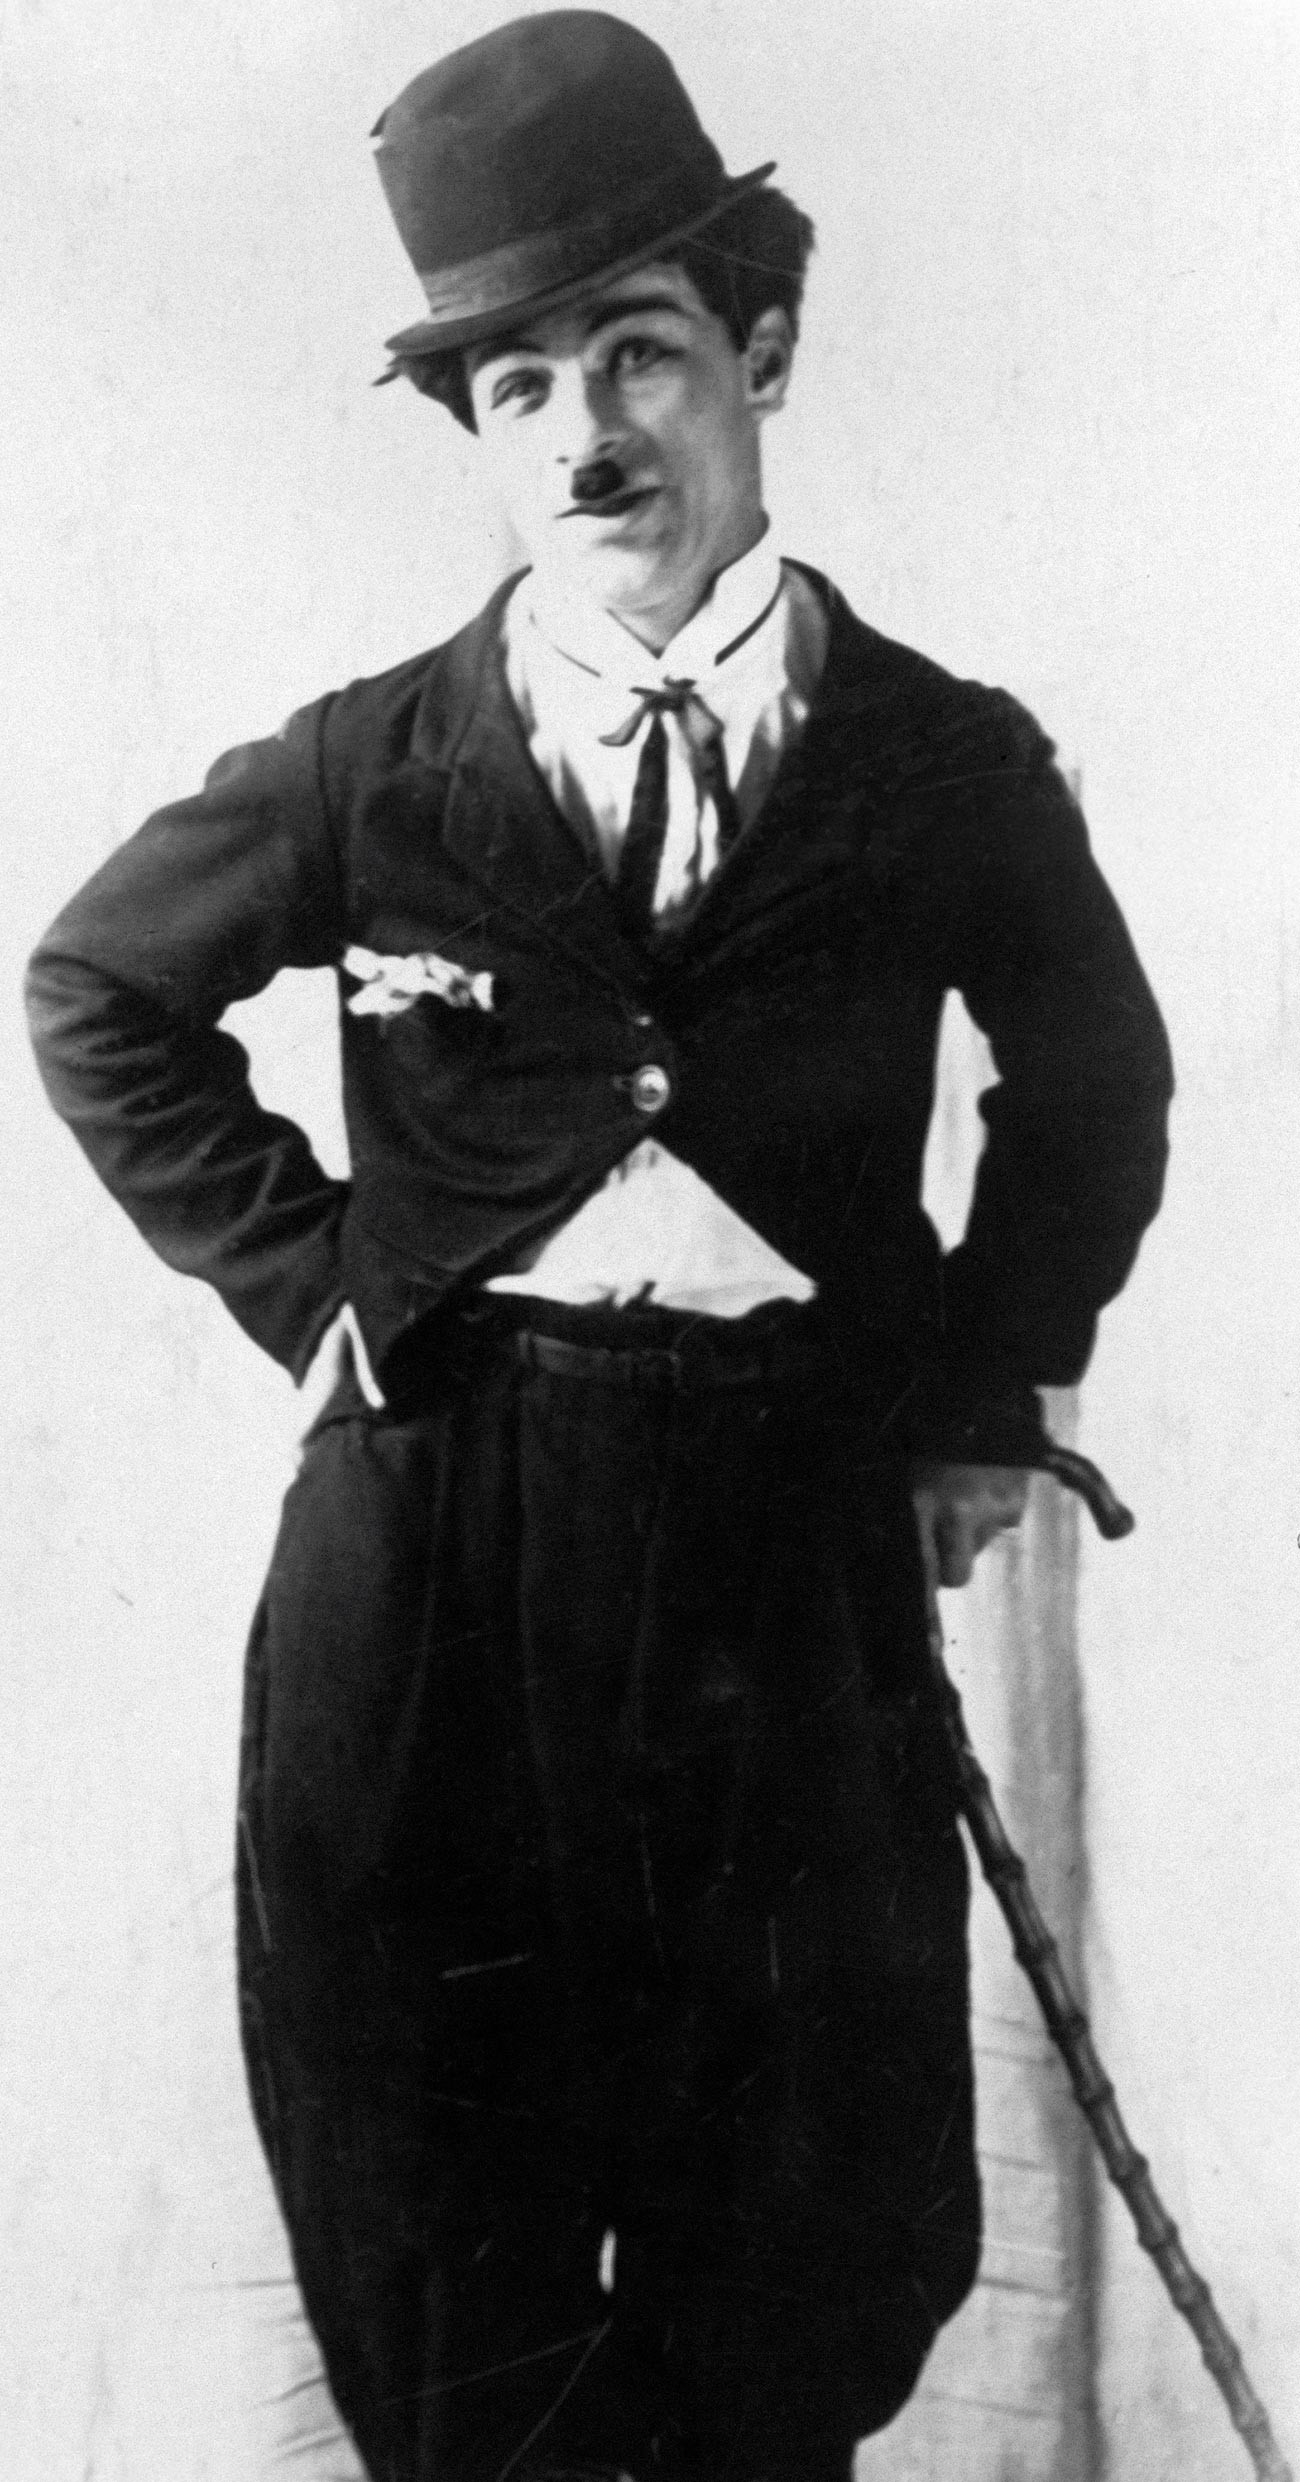 Mikhail Rumyanyntsev was much inspired by Charlie Chaplin's famous character, the Tramp.